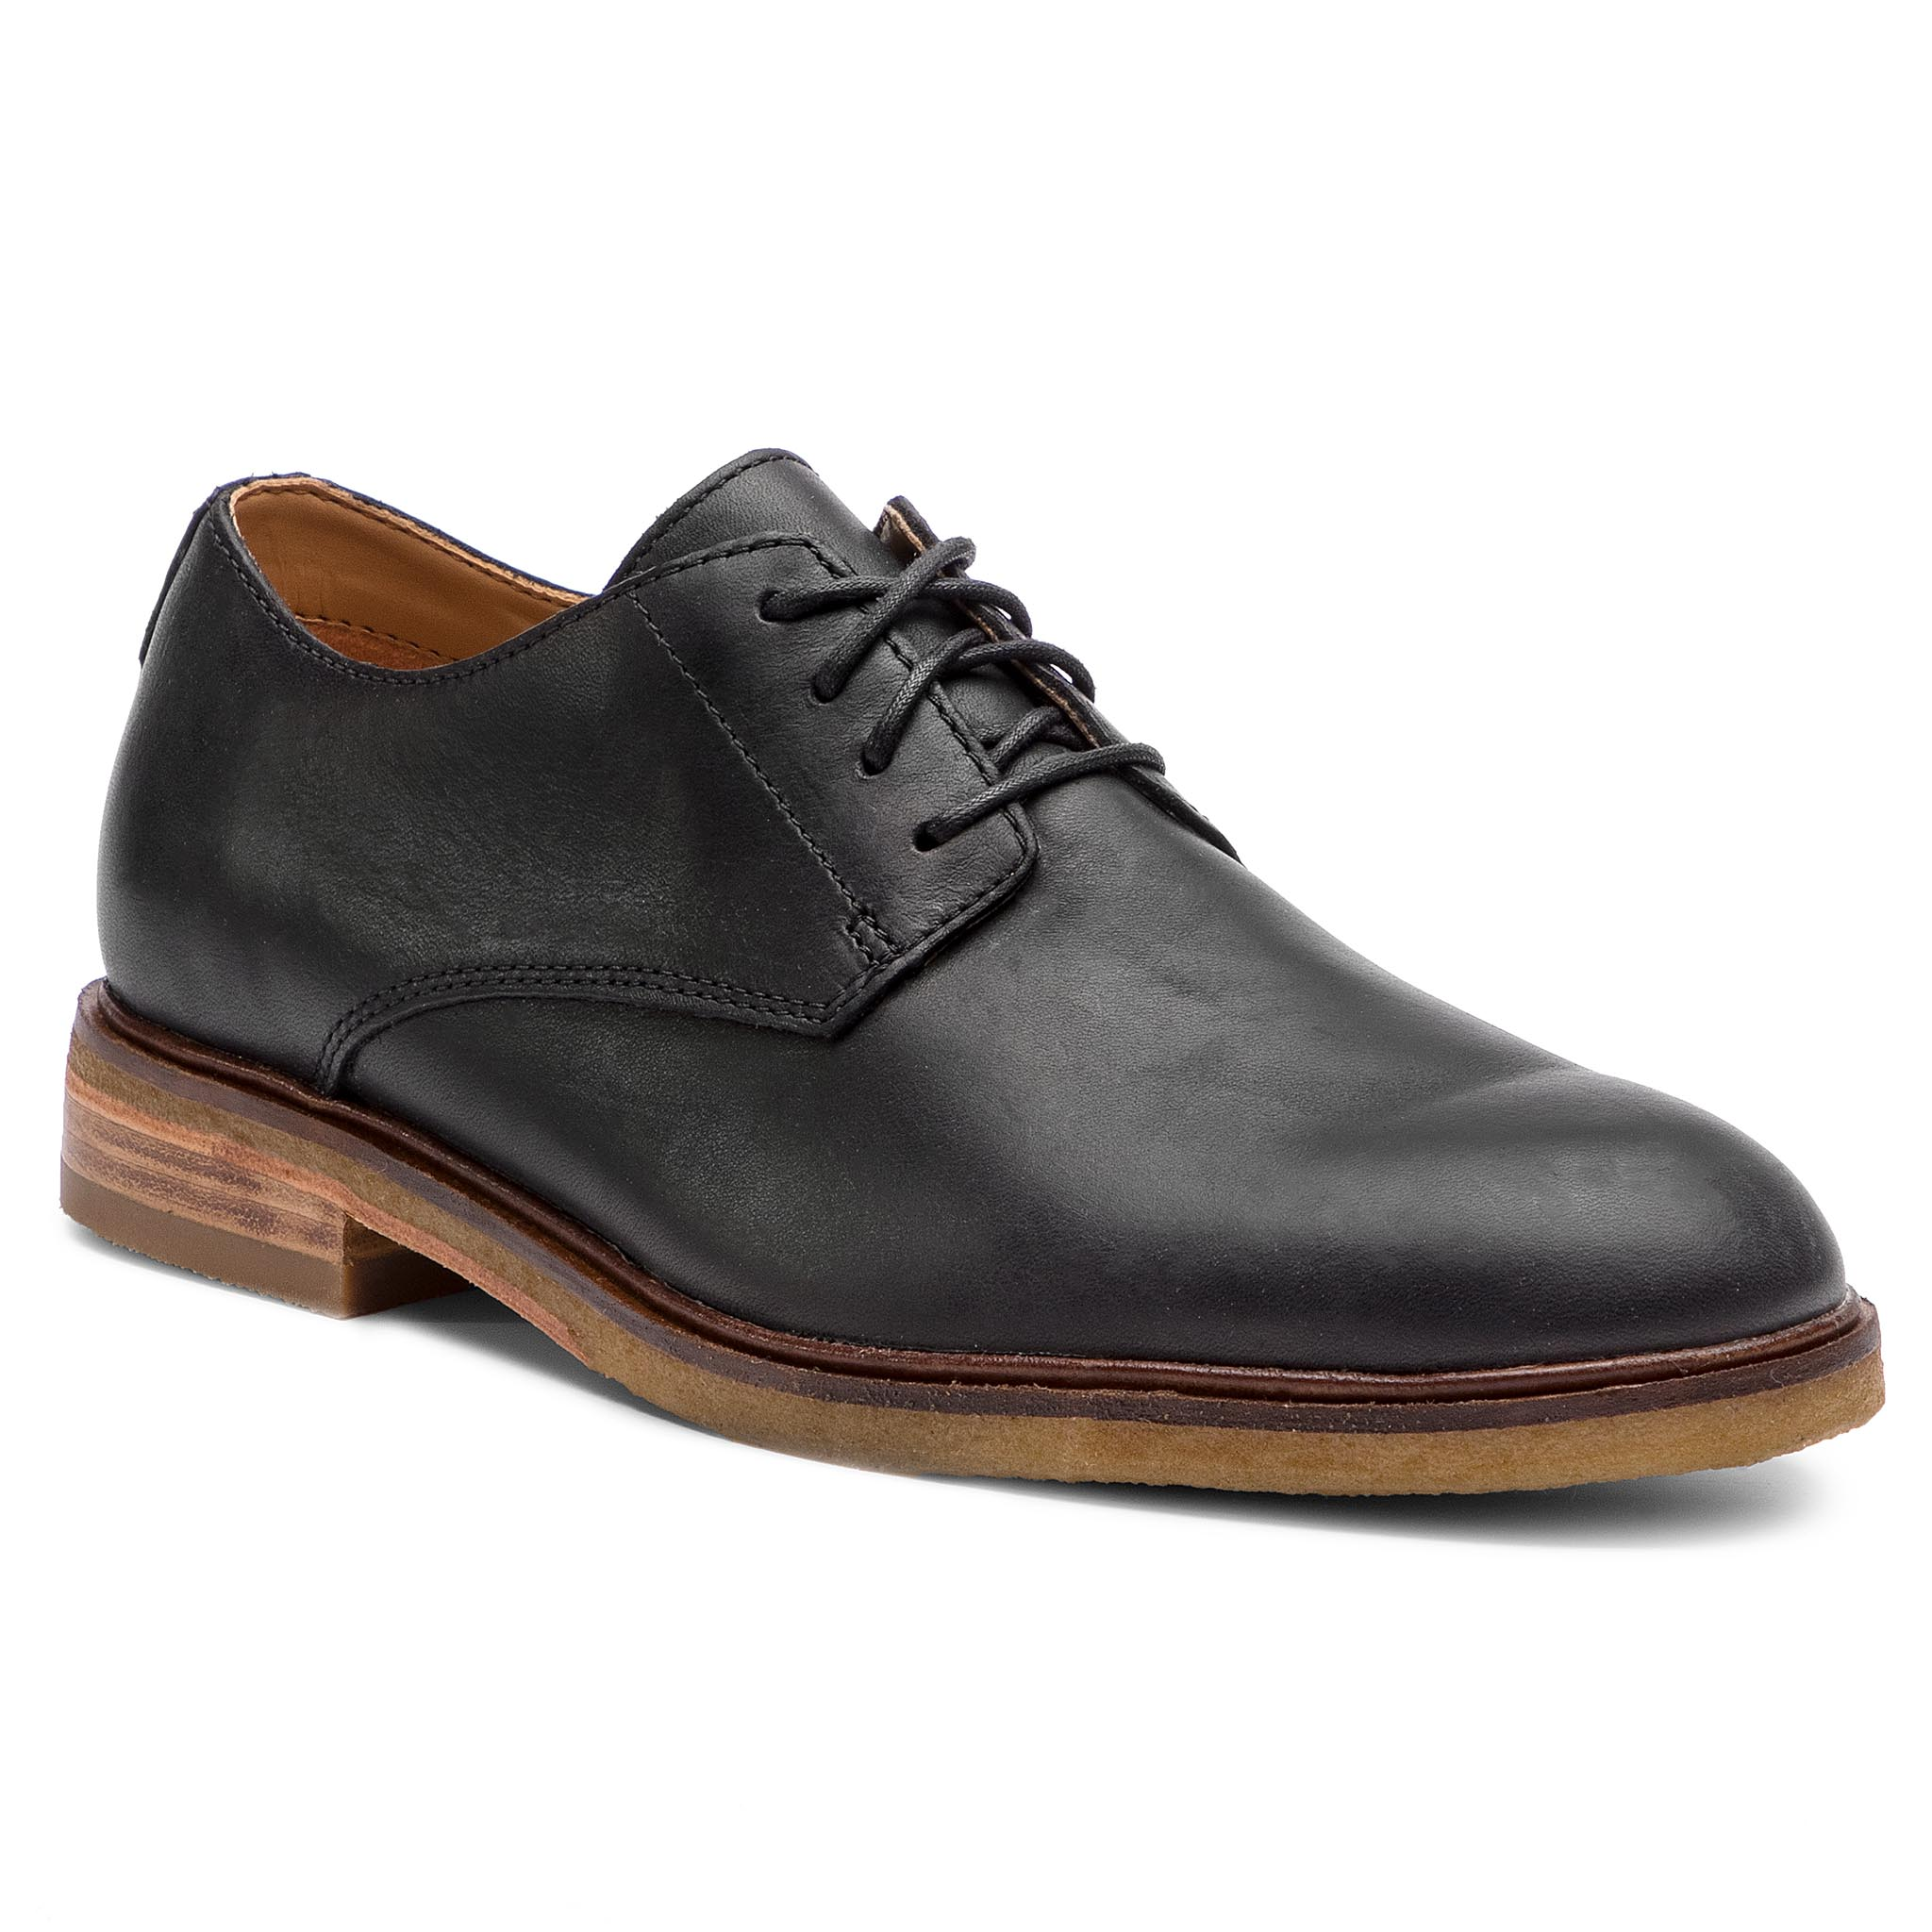 Pantofi CLARKS - Clarkdale Moon 261362537 Black Leather